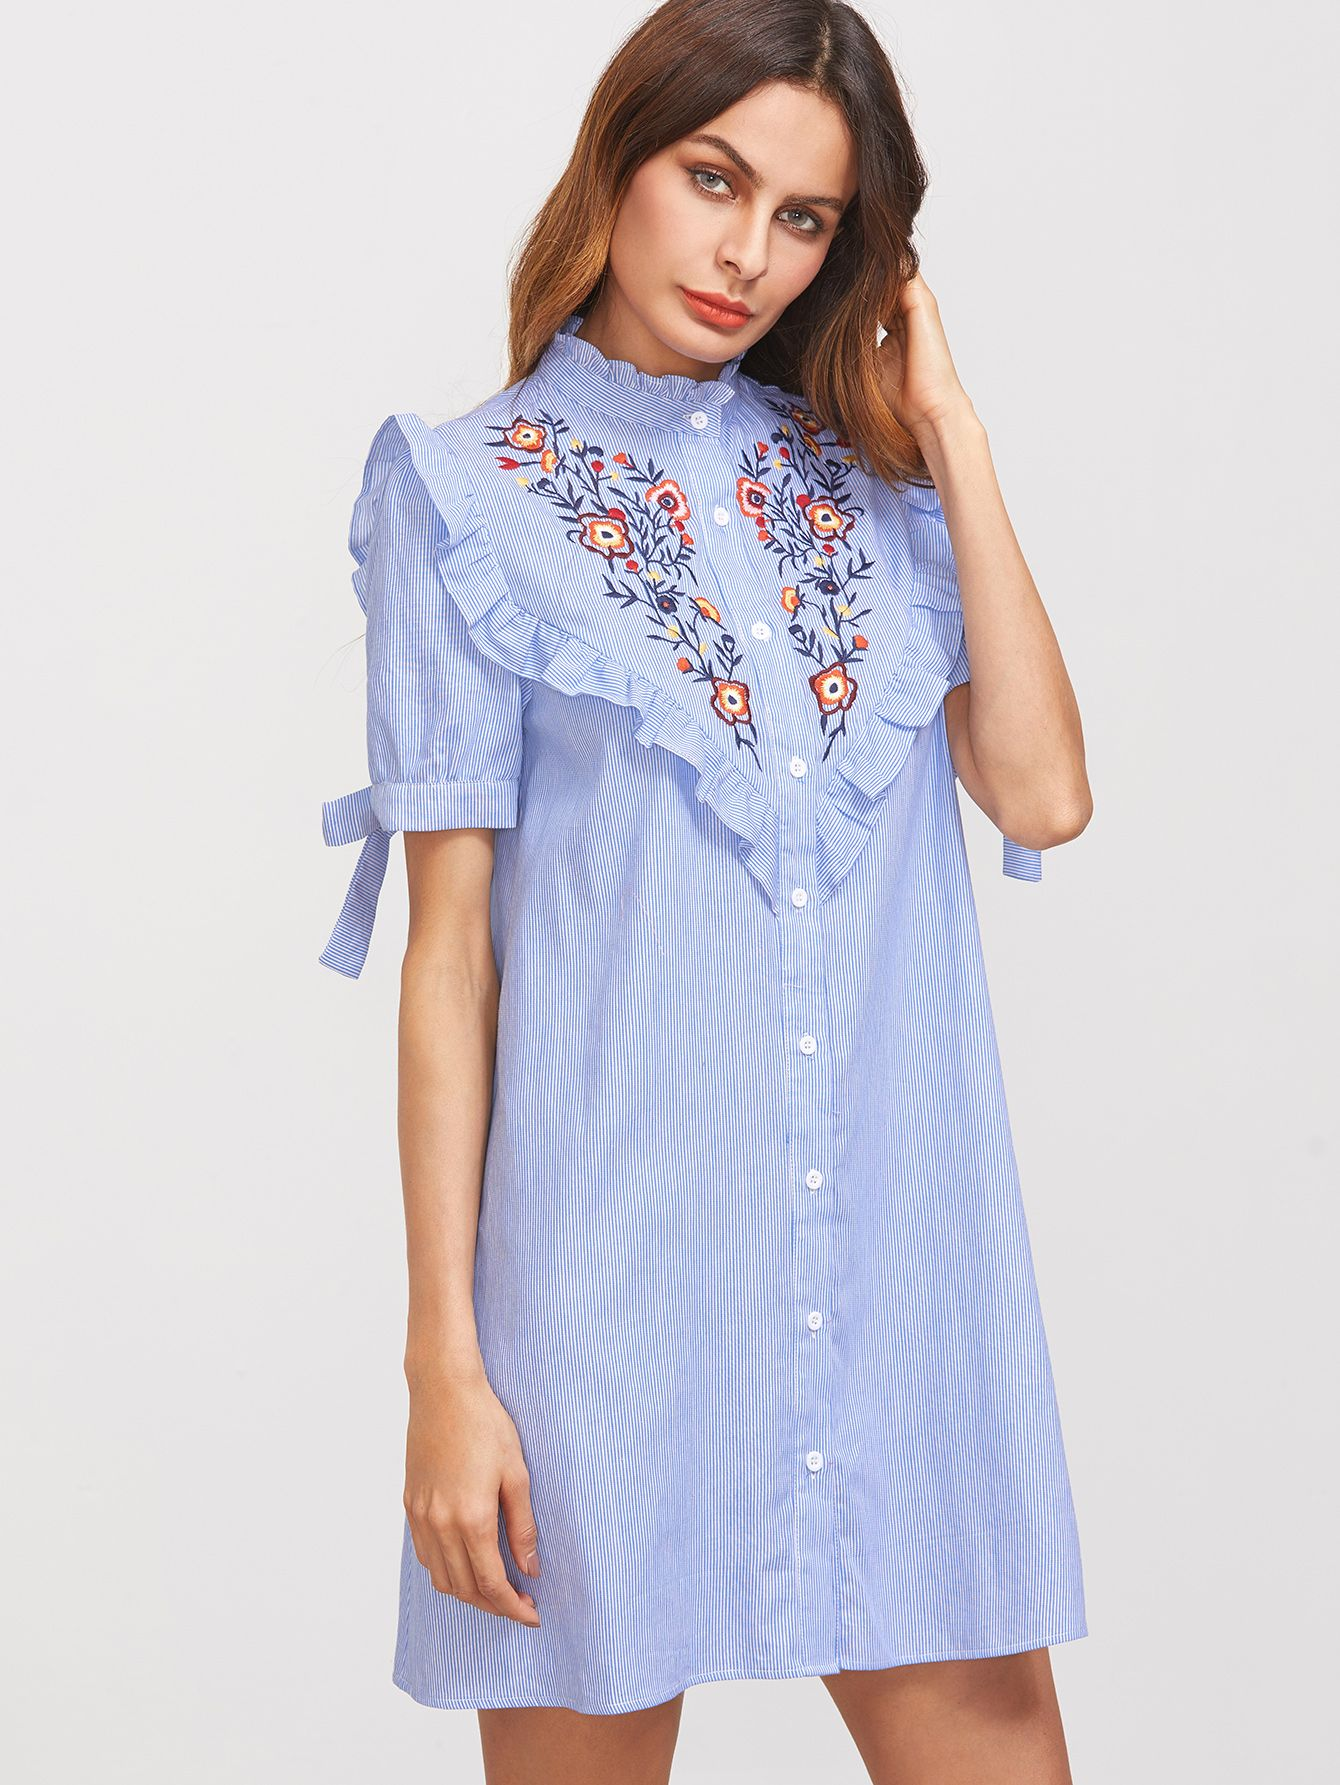 34295b97340 Online shopping for Blue Striped Ruffle Trim Tie Sleeve Embroidered Shirt  Dress from a great selection of women s fashion clothing   more at  MakeMeChic.COM.